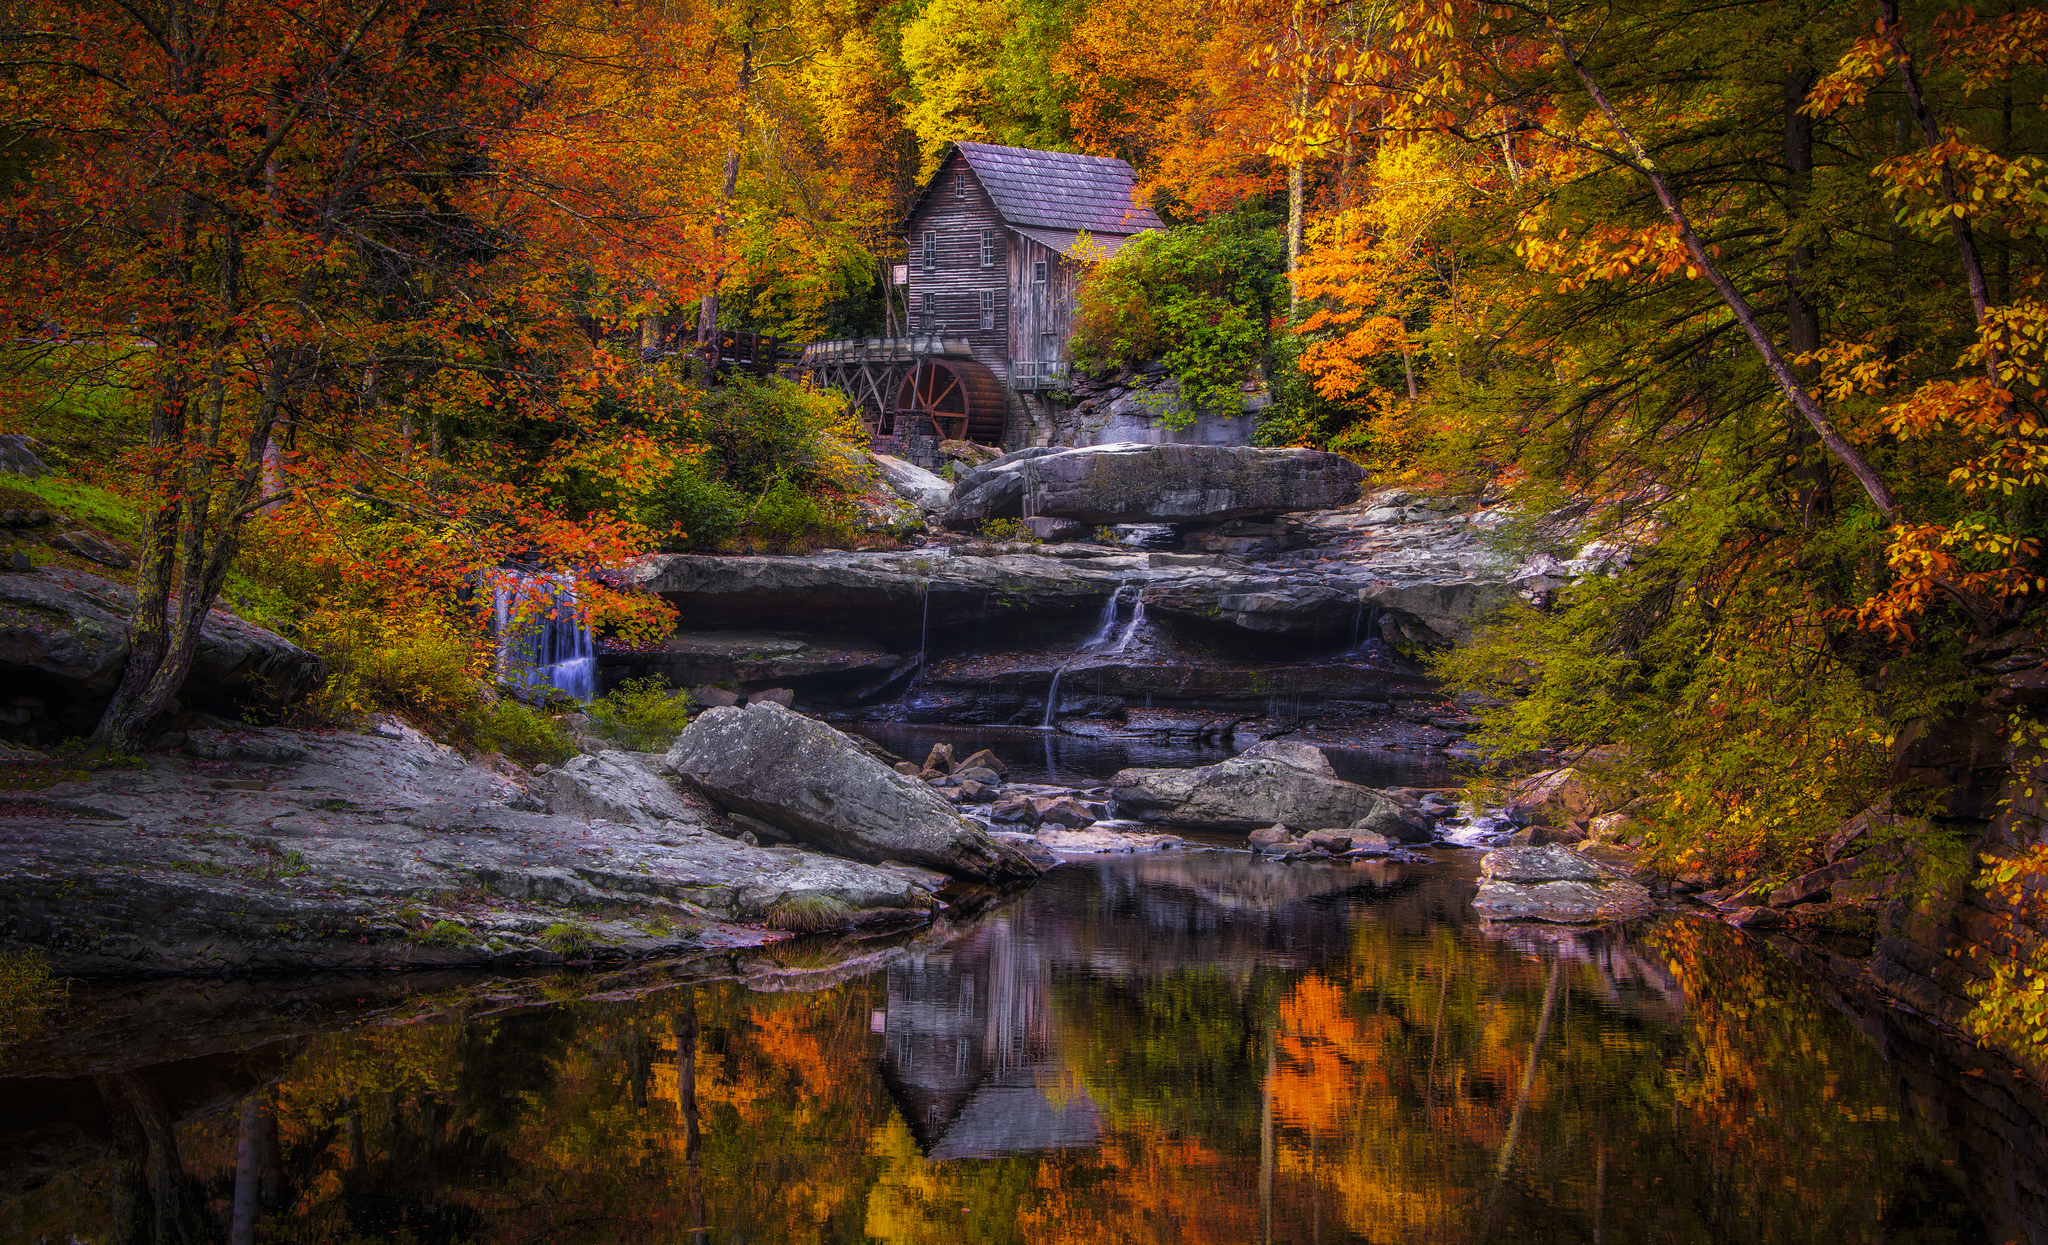 Fall Foliage Wallpaper Widescreen Water Mill In Autumn Hd Wallpaper Background Image